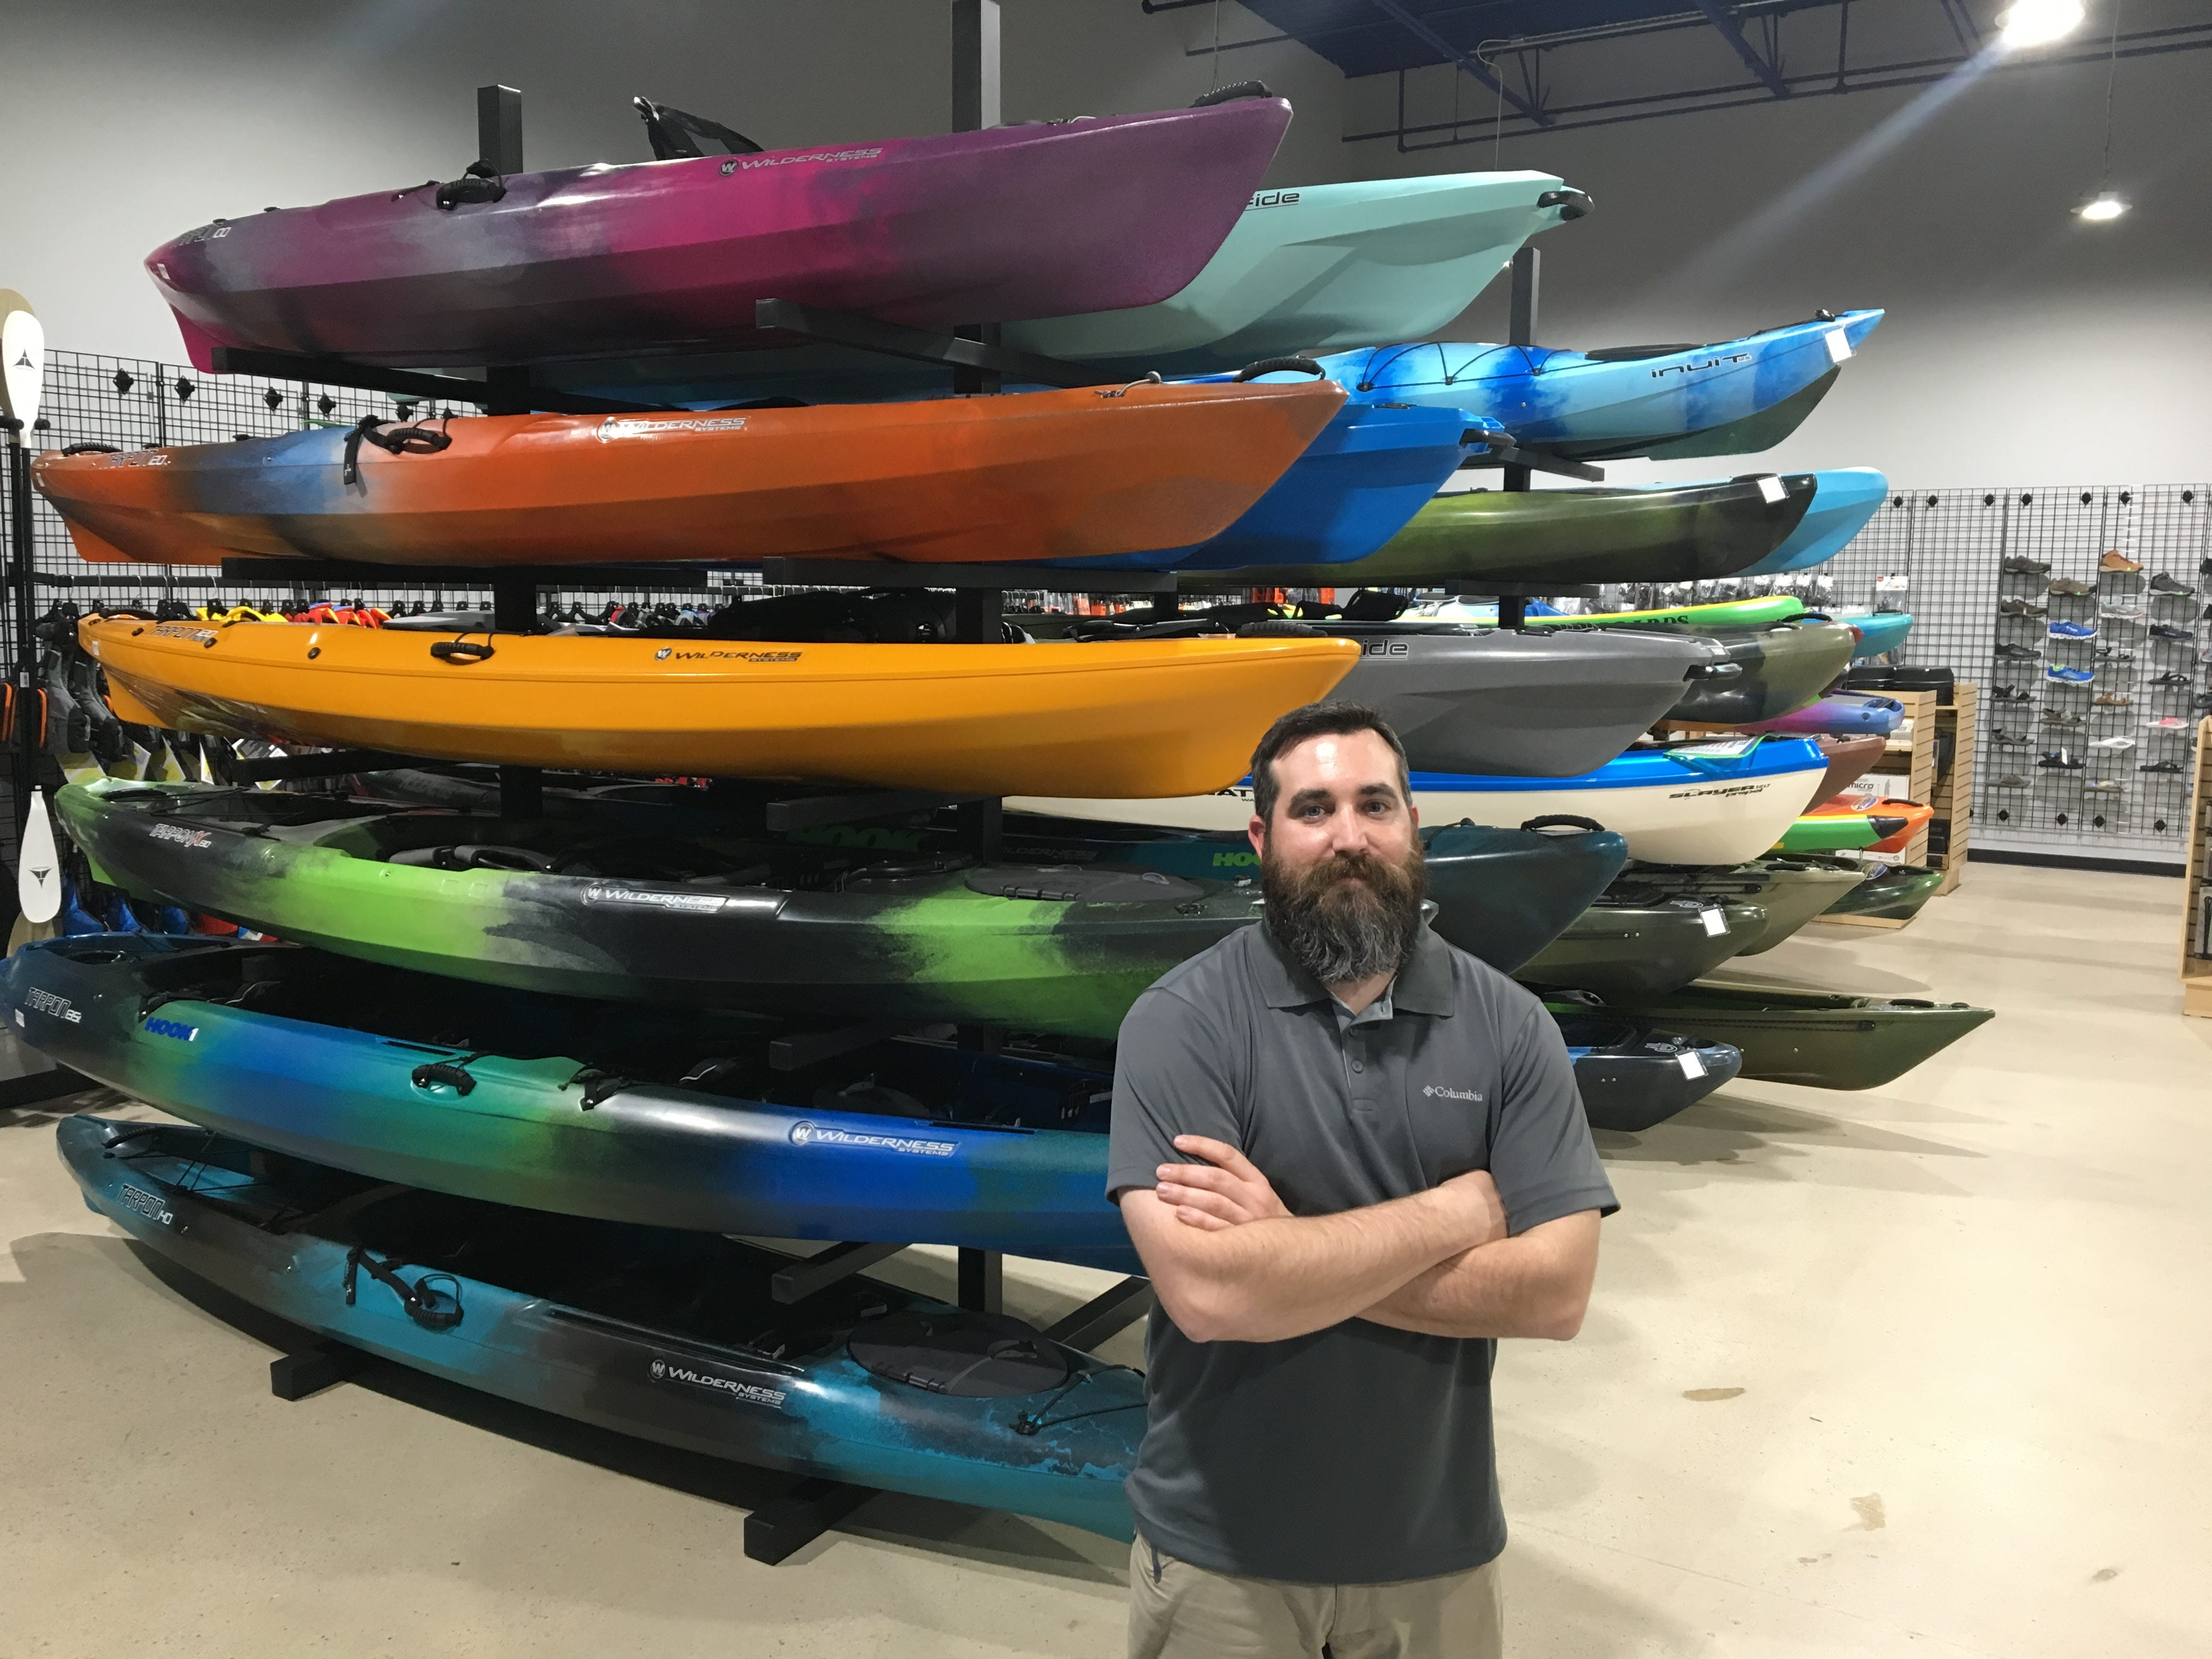 Chris Conder, manager of the new Murfreesboro Hook 1 outfitters, stands in front of a display of top-of-the-line kayaks.